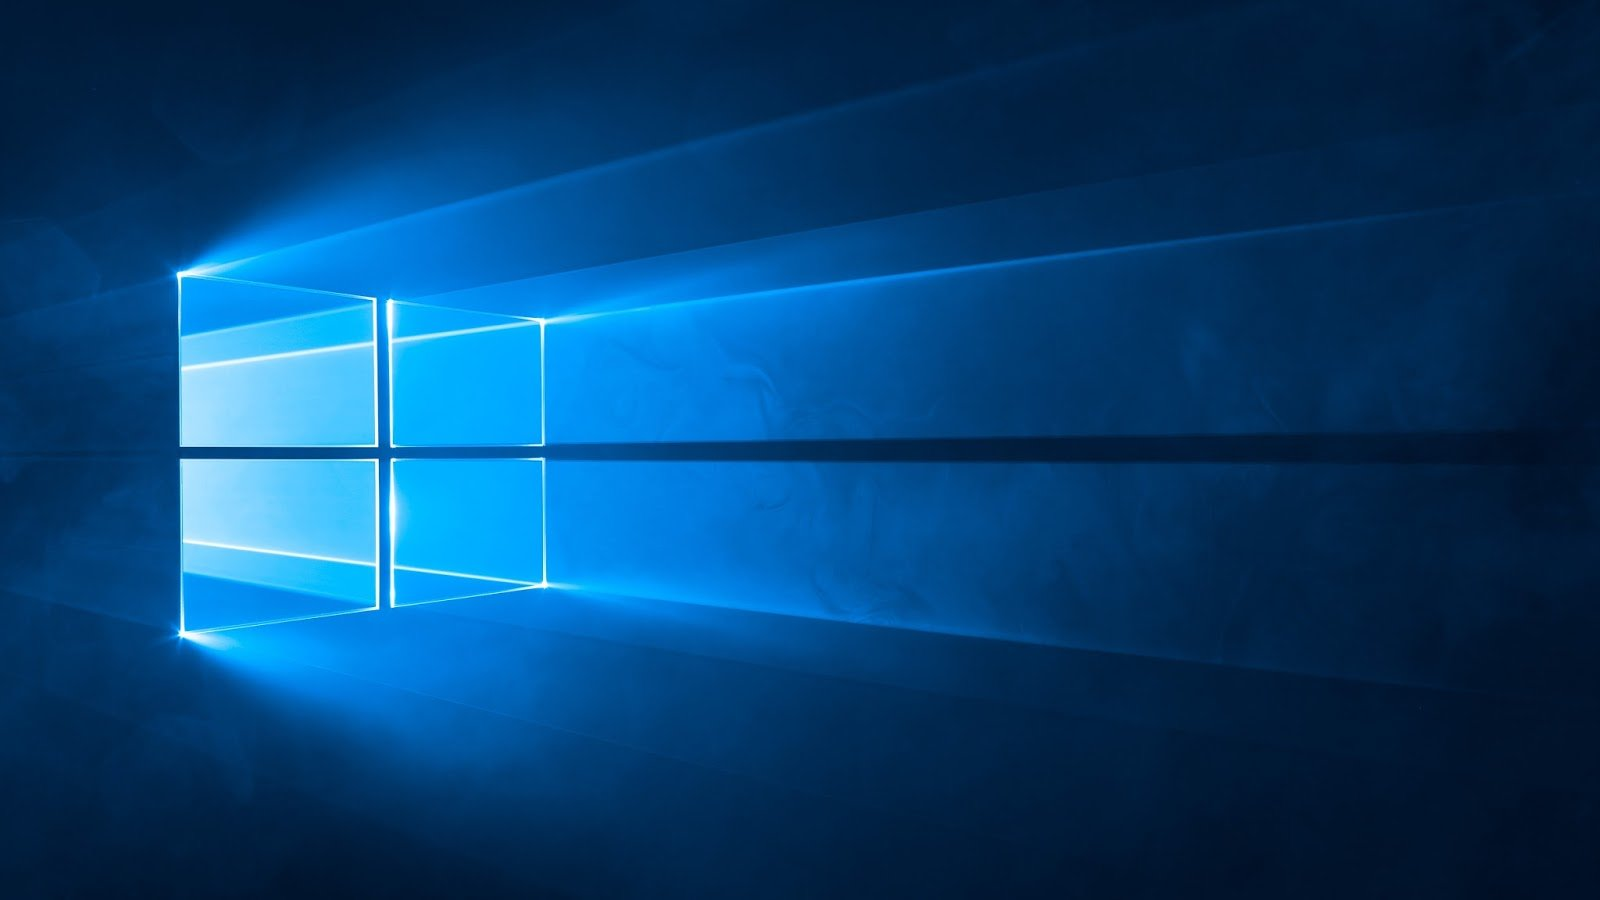 42 Windows 10 Desktop Wallpapers On Wallpapersafari